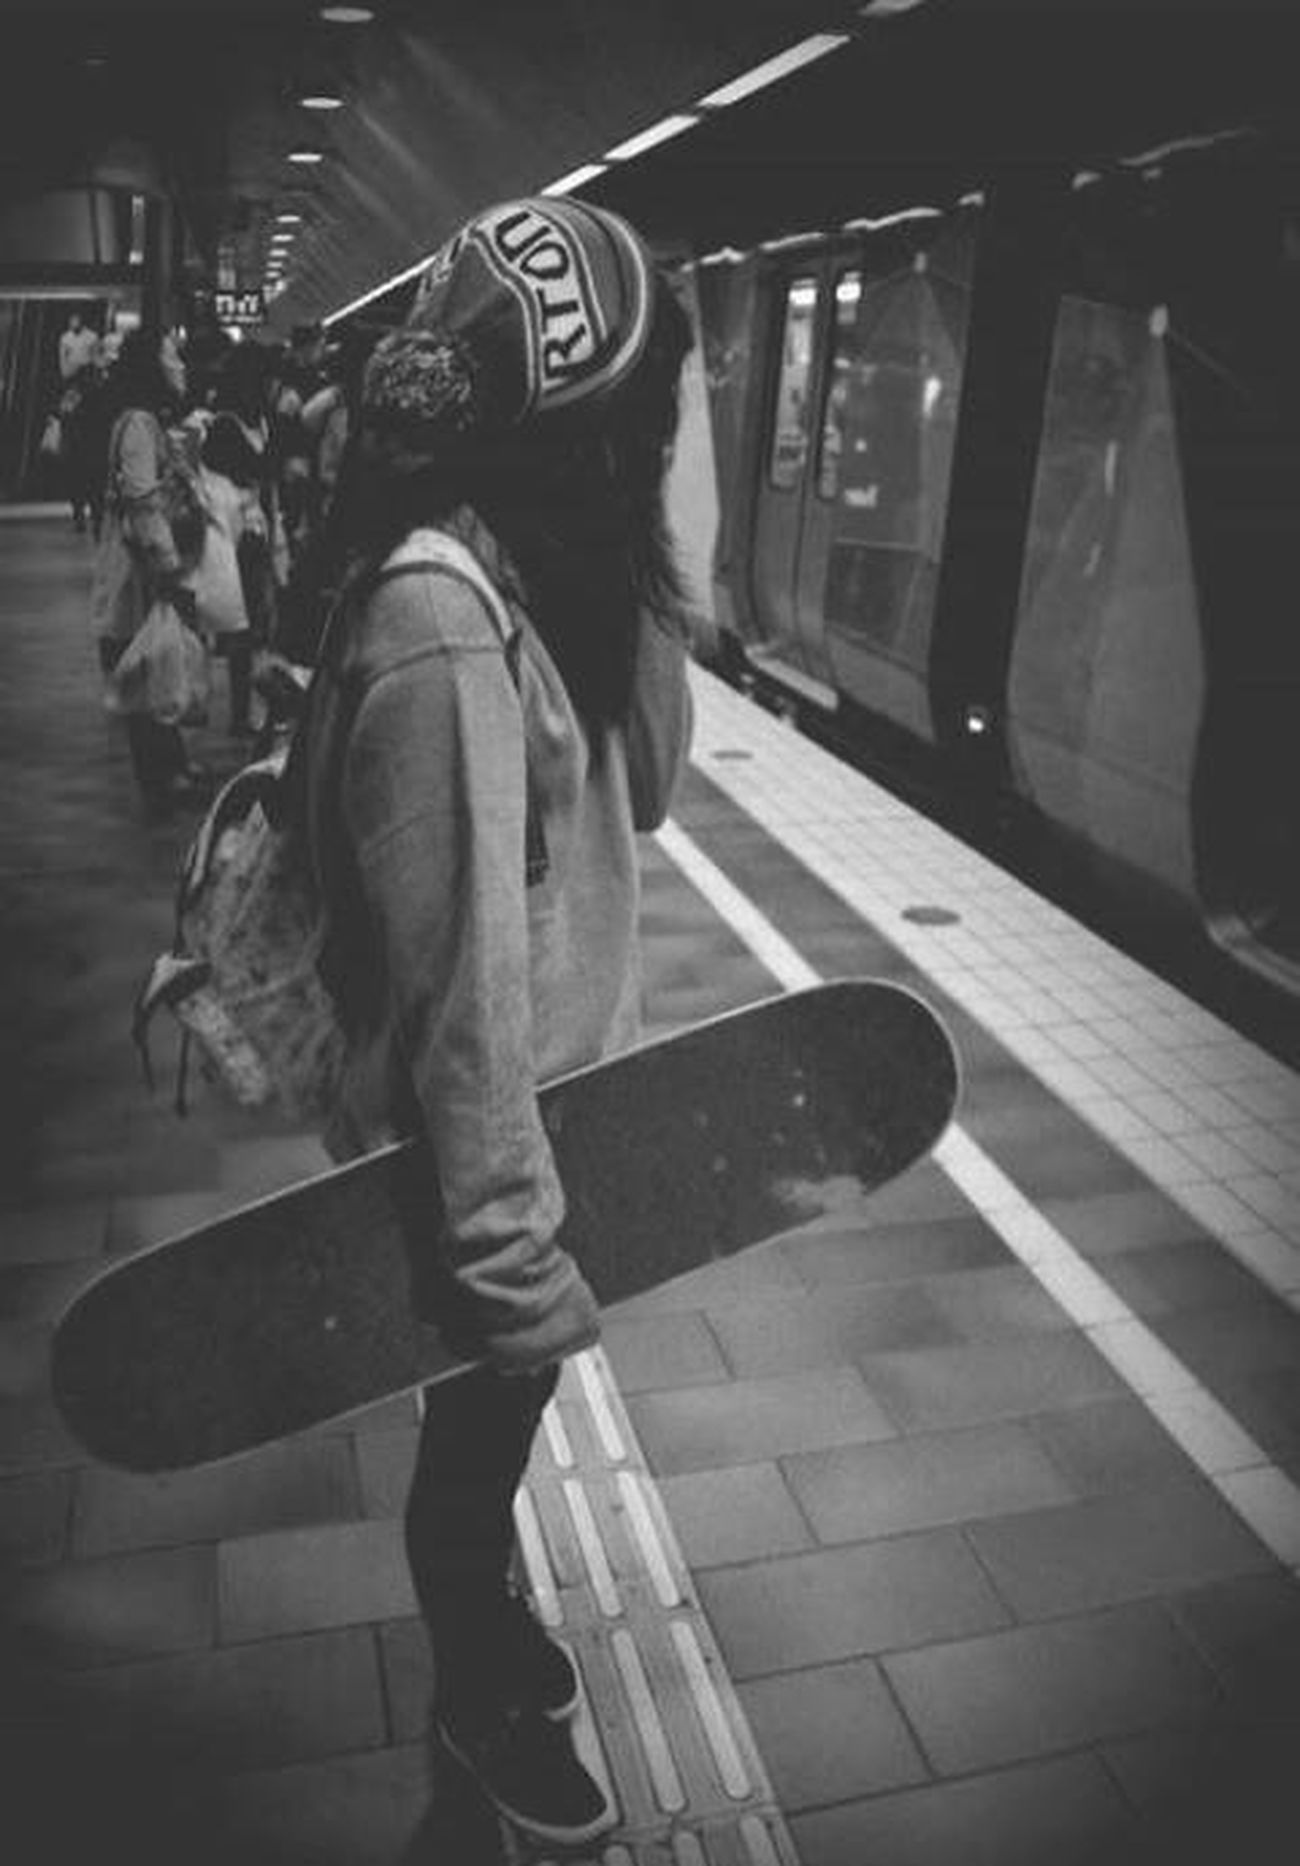 I would learning skateboard soon haha;))Skate Love Skate Skate Girl My Dream *-* <3